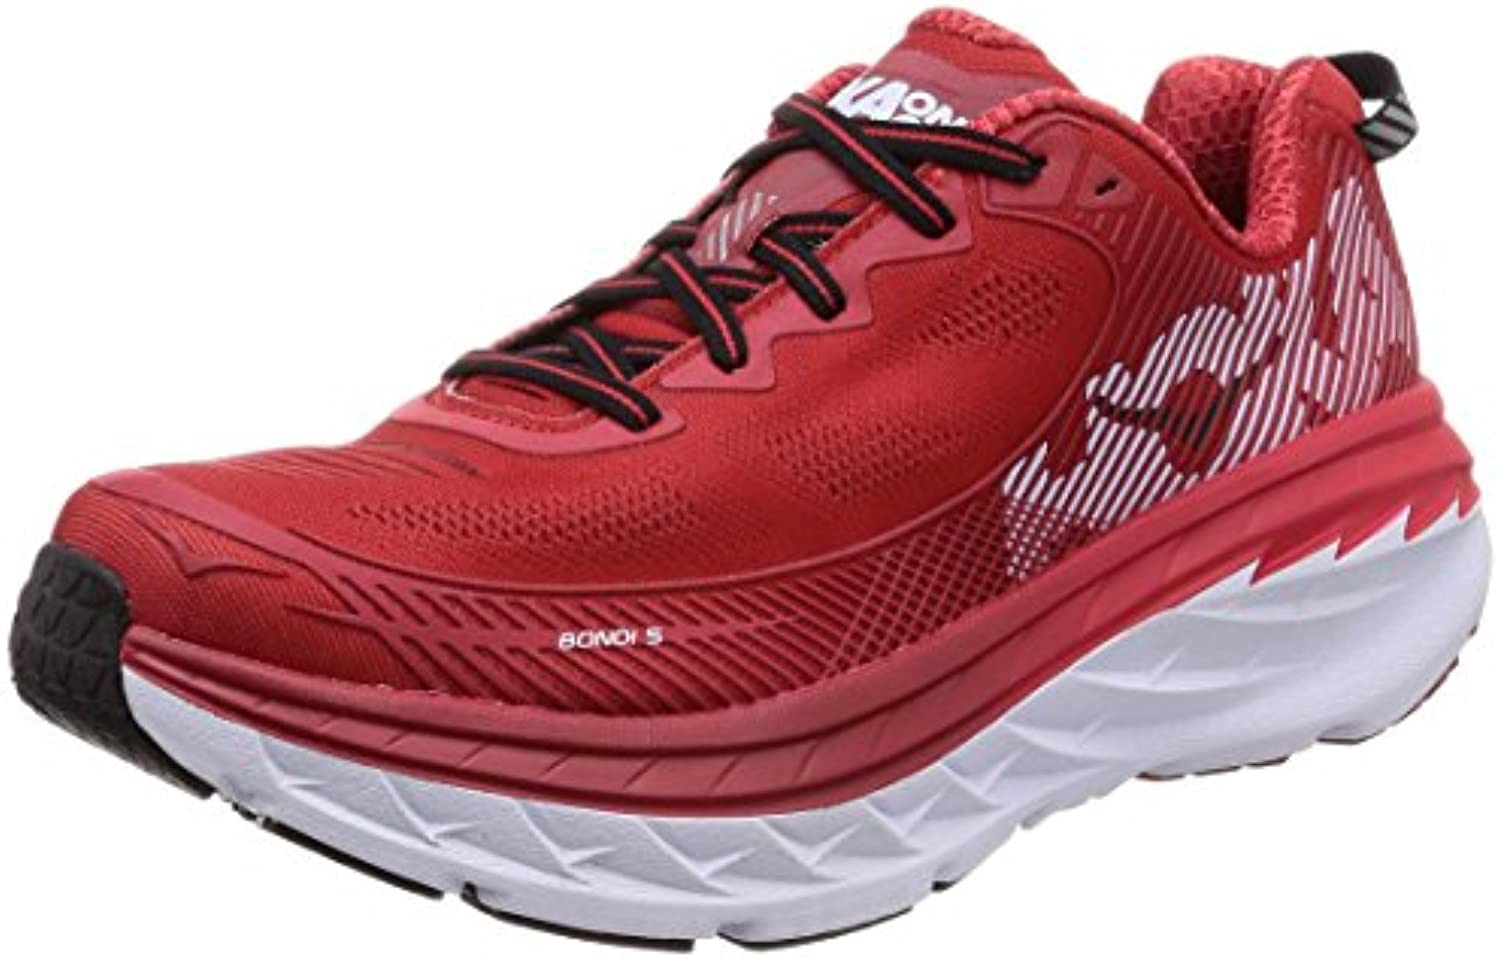 Hoka One One Bondi 5 Herren SCHUE Running  Red (High Risk/Haute Red) 41 1/3 EU